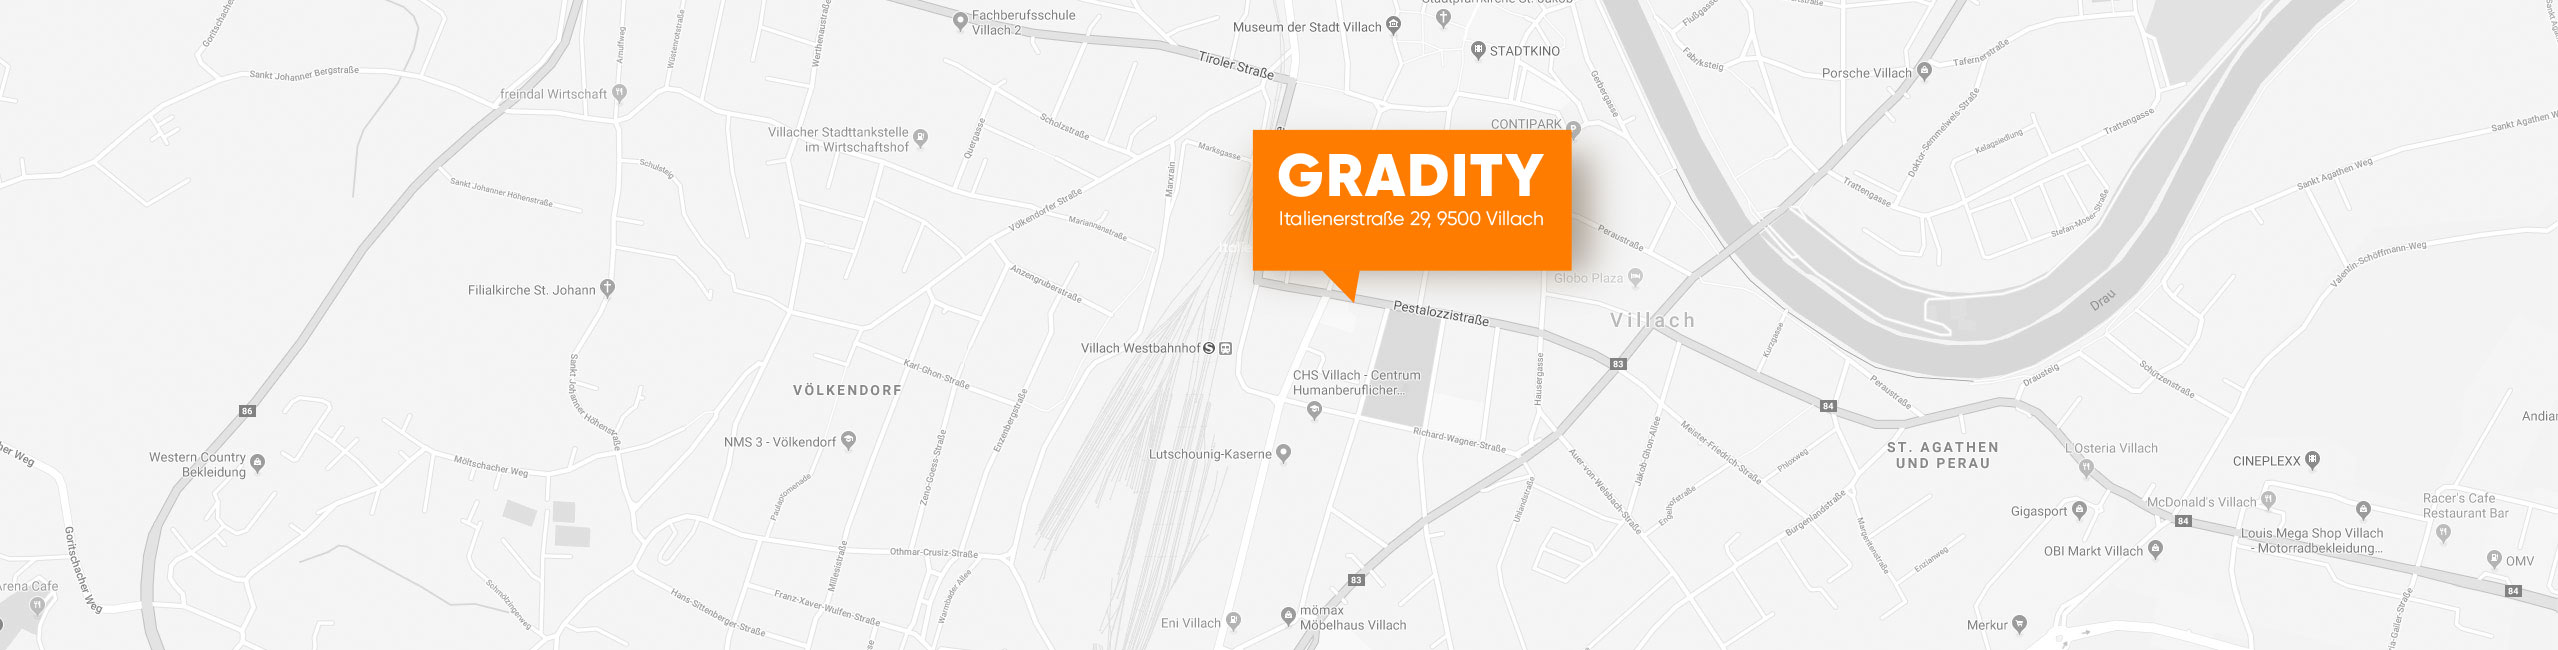 GRADITY Marketing & Consulting KG | Agentur für erfolgreiches Online Marketing | Kontakt